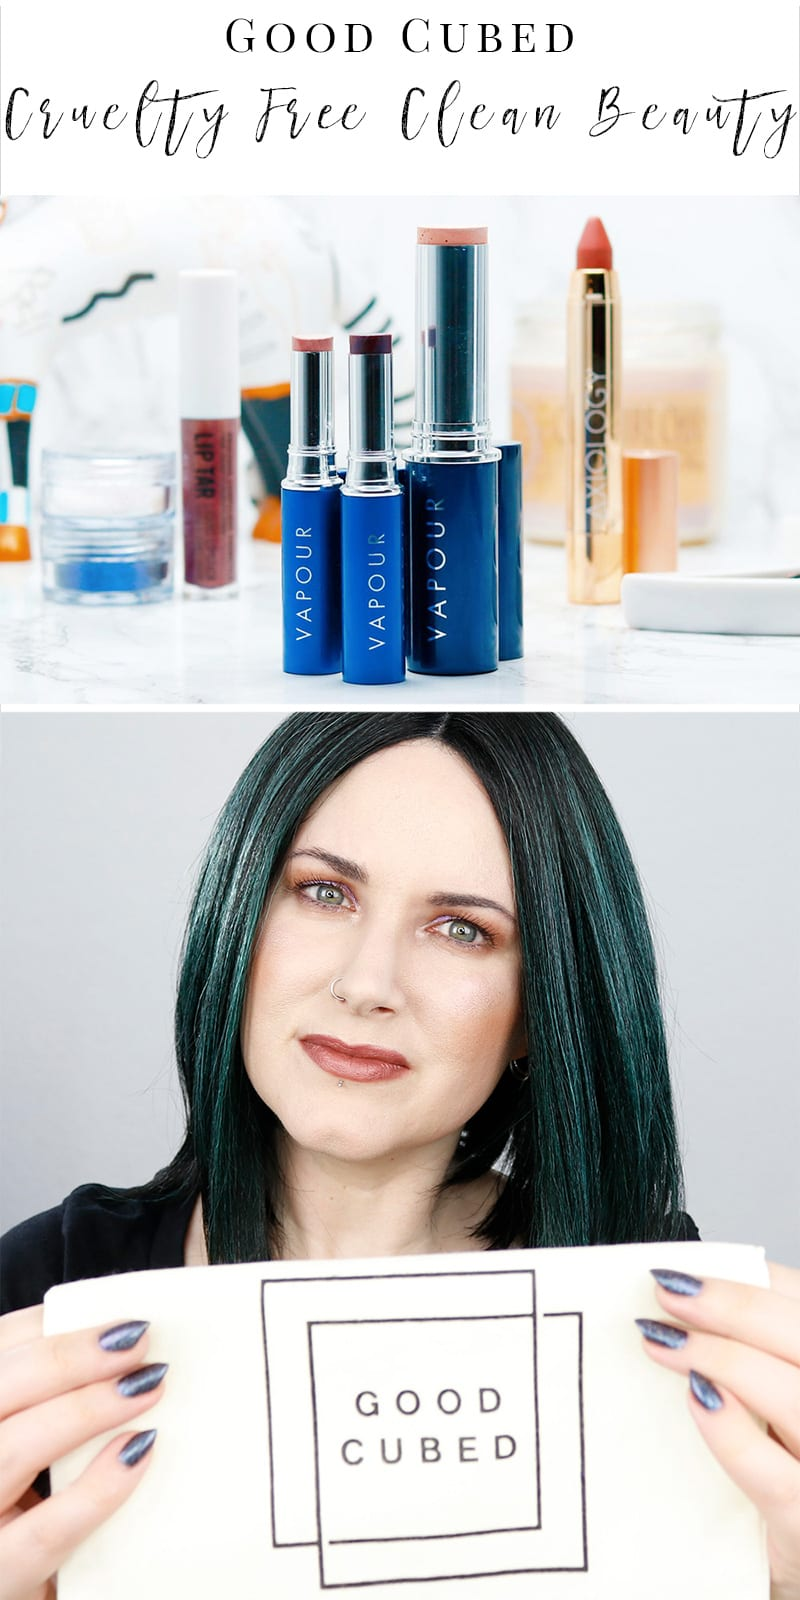 Good Cubed - A new clean online beauty shop that sells cruelty free, paraben free, sulfate free, gluten free, palm oil free products. They give back a portion of all sales to the Beagle Freedom Project.